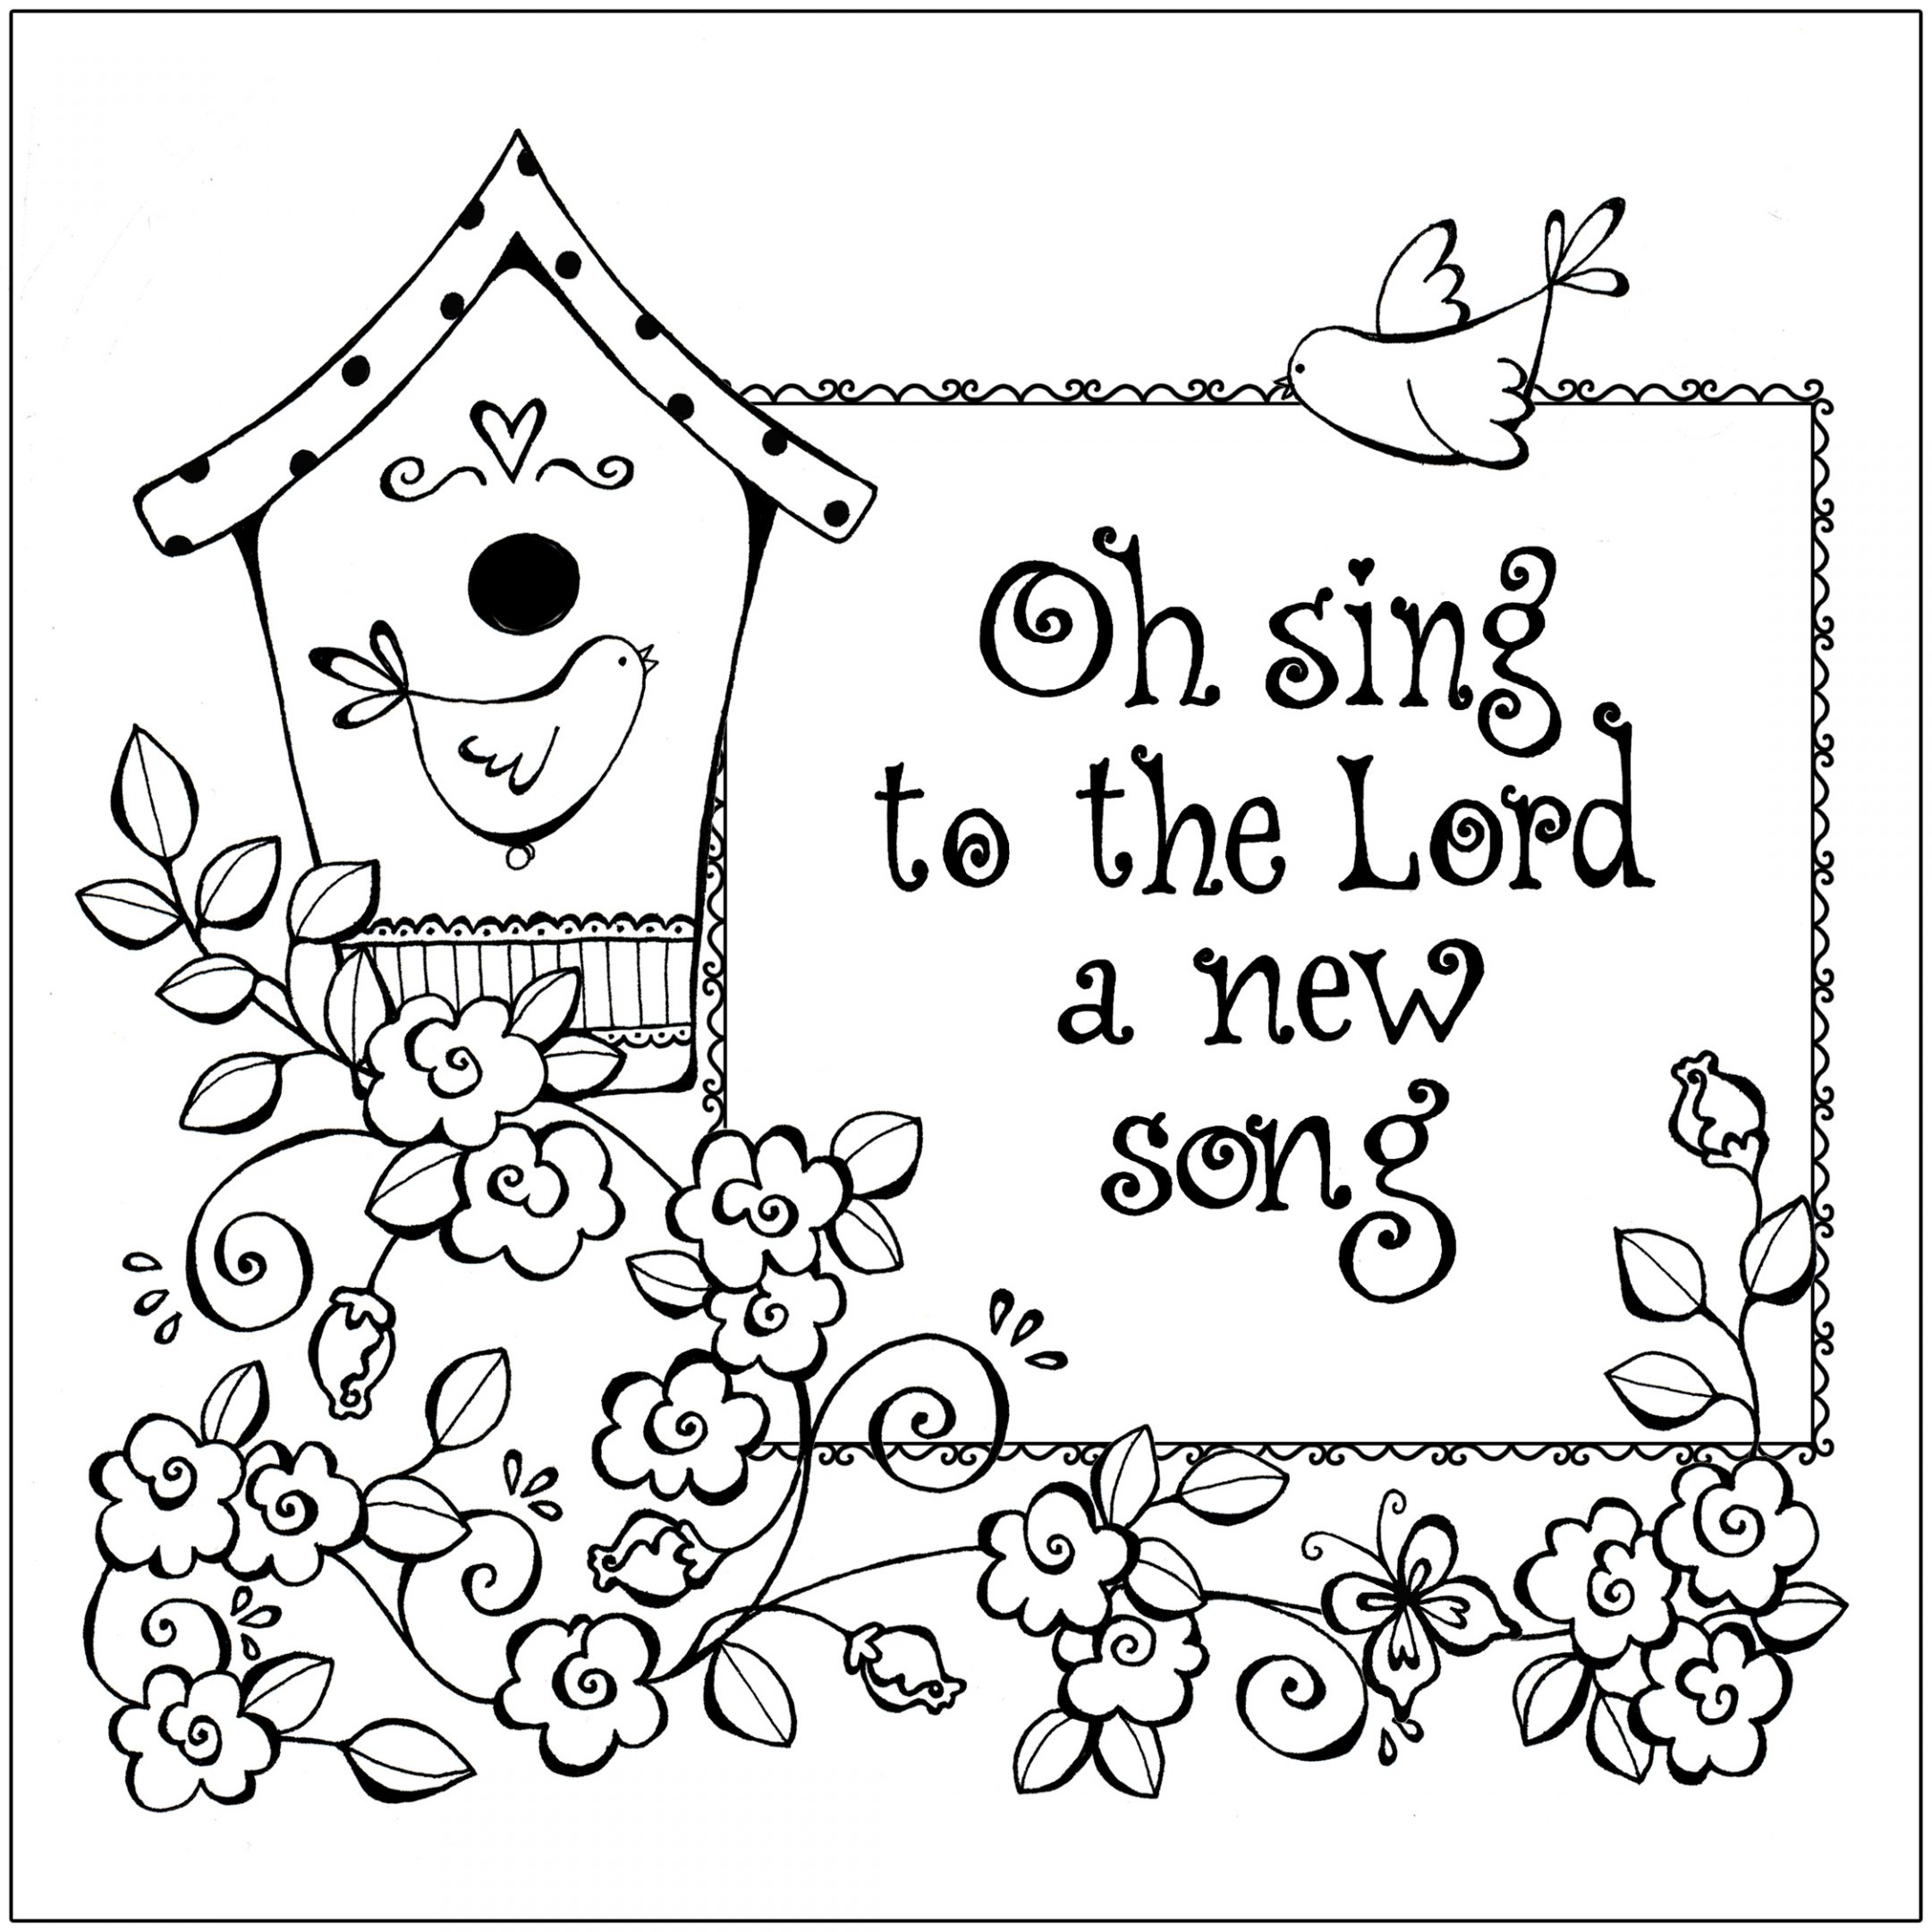 Coloring Pages ~ Printable Christianing Pages Sunday School Perfect - Free Printable Christian Coloring Pages